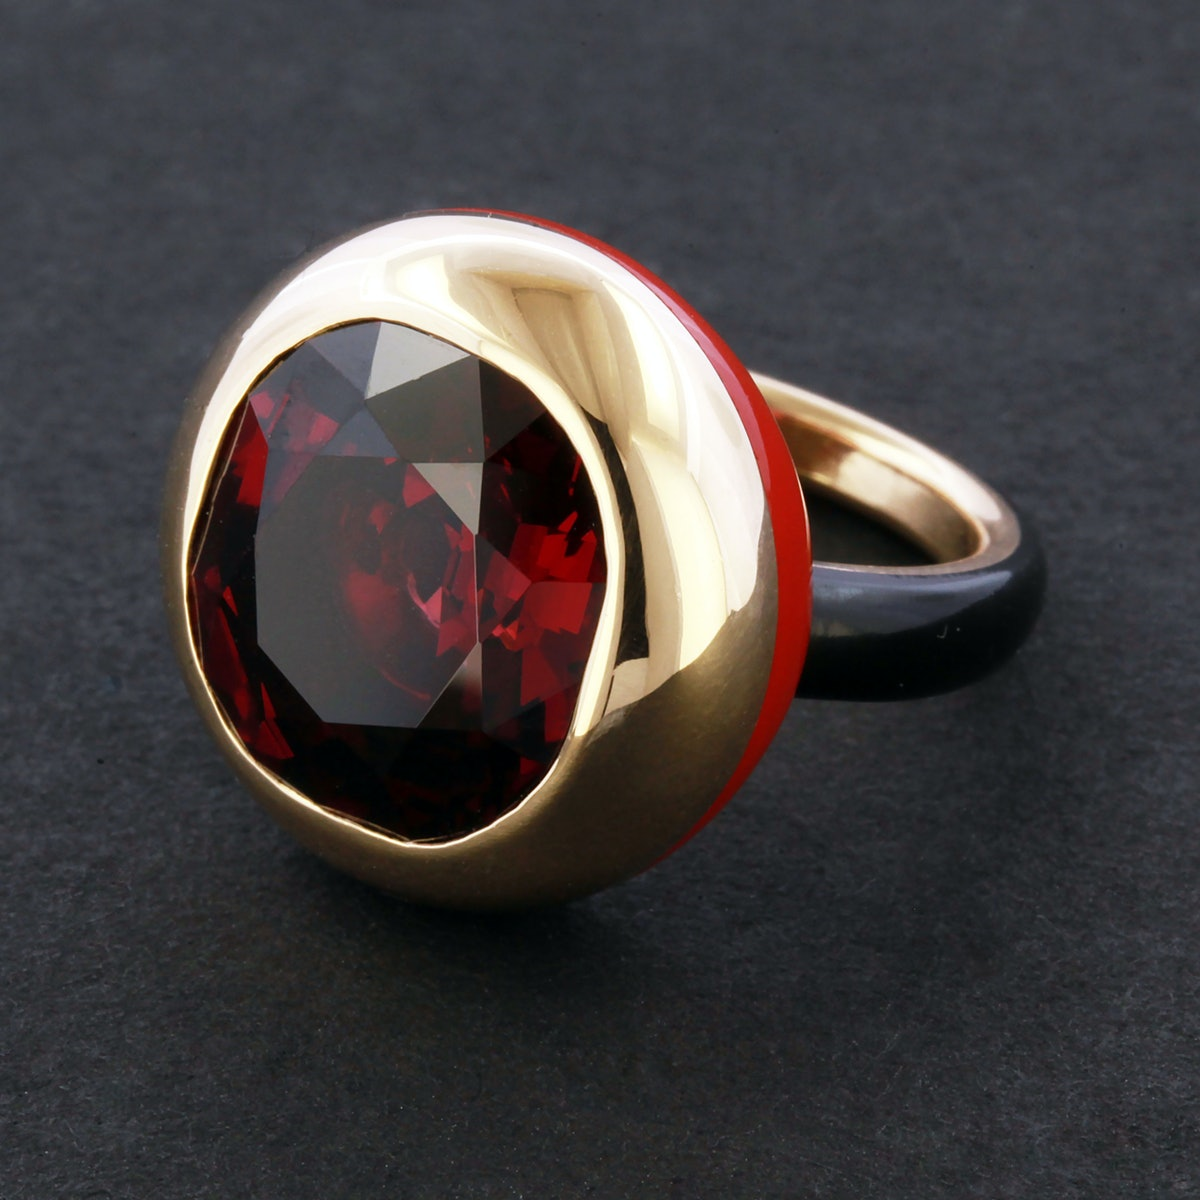 James-de-Givenchy-for-Taffin-Garnet-Rhodolite,-Red-and-Black-Ceramic-ring,-Price-Upon-Request,-at-www.taffin.com